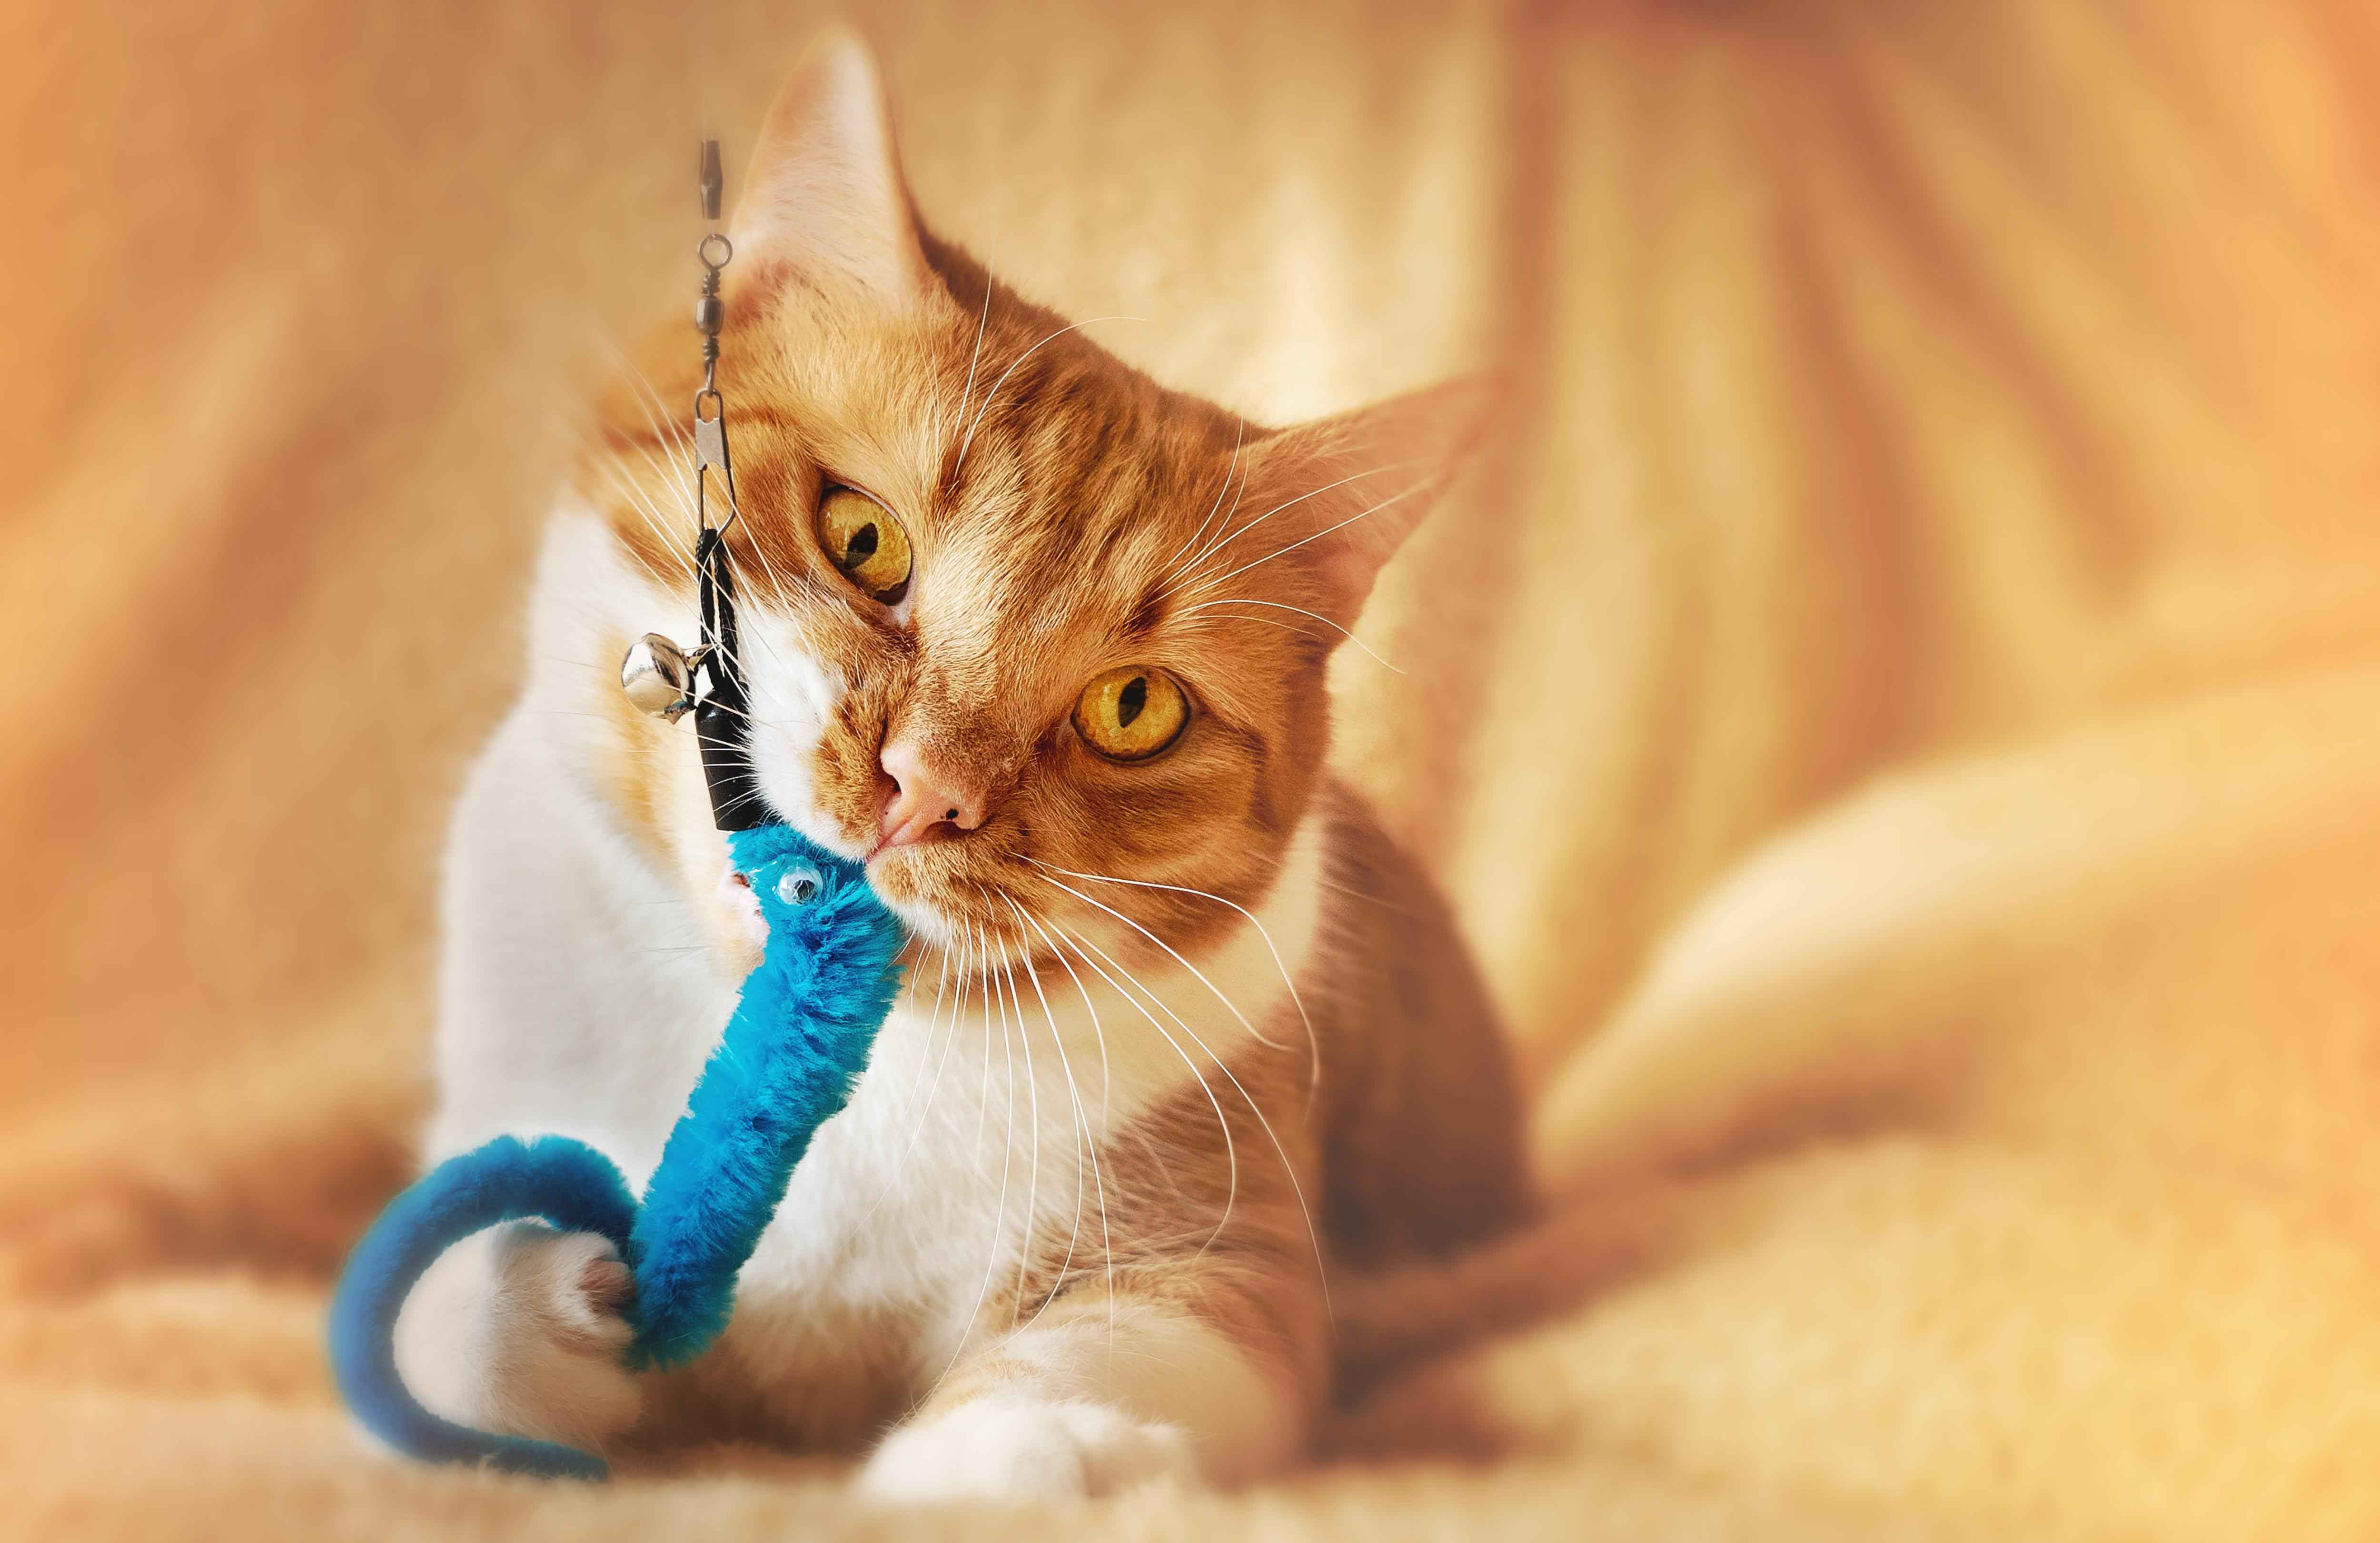 orange tabby cat chewing on blue toy